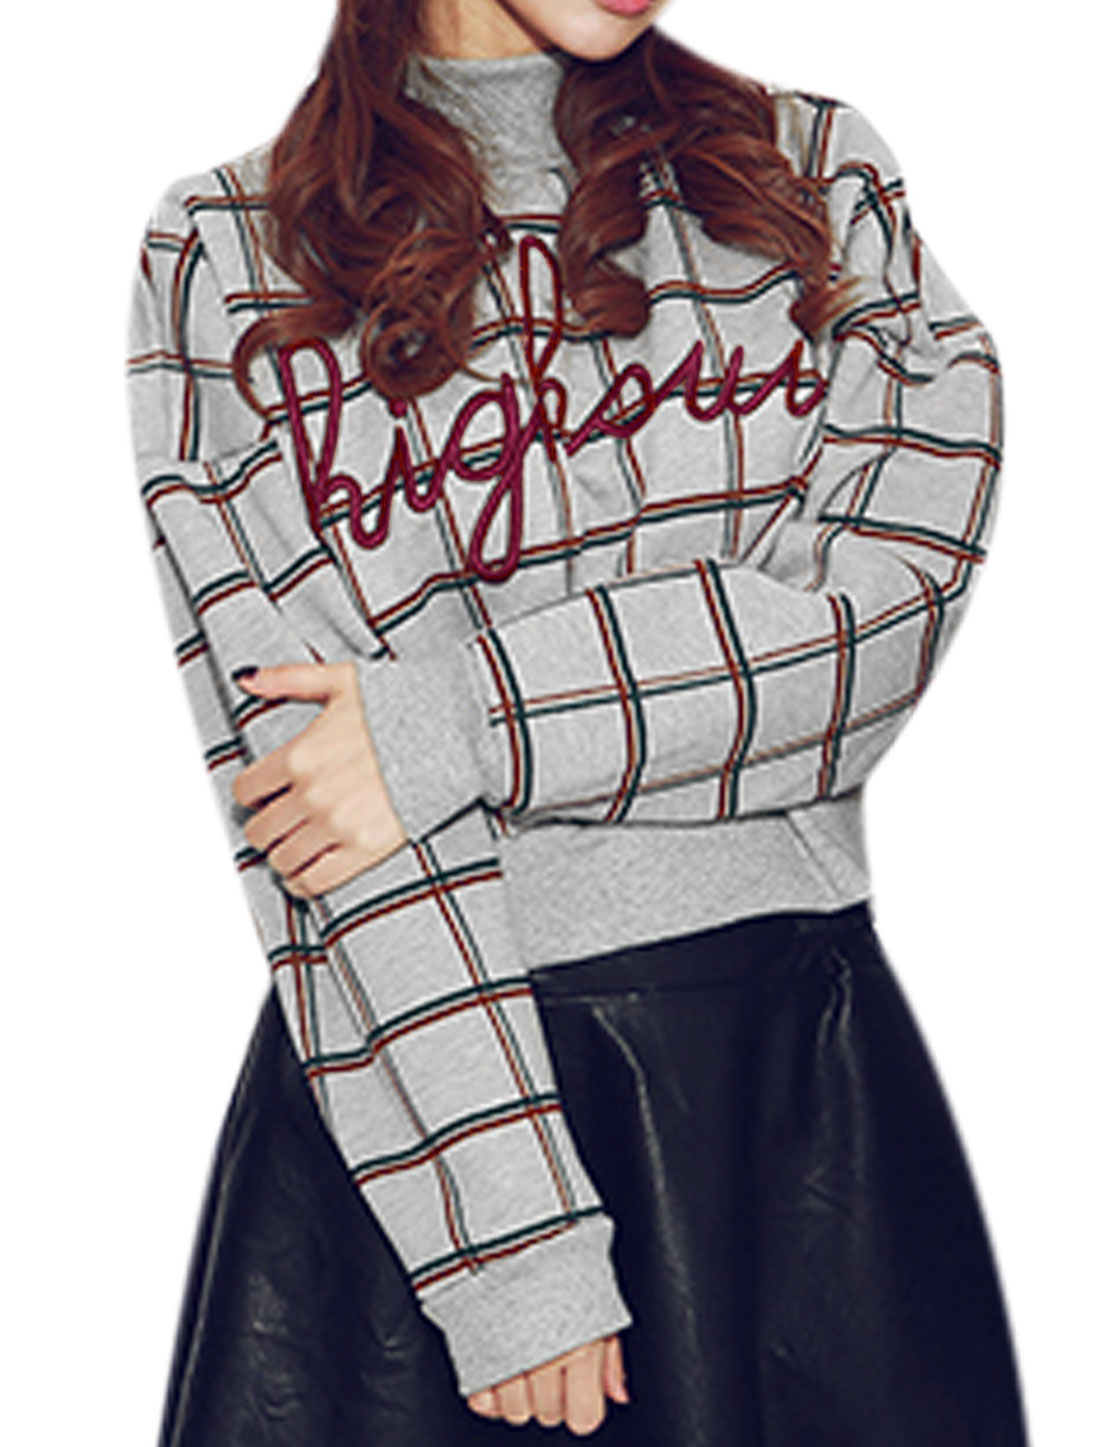 New Style Letters Plaids Pattern Fleece Inside Top for Lady Light Gray S